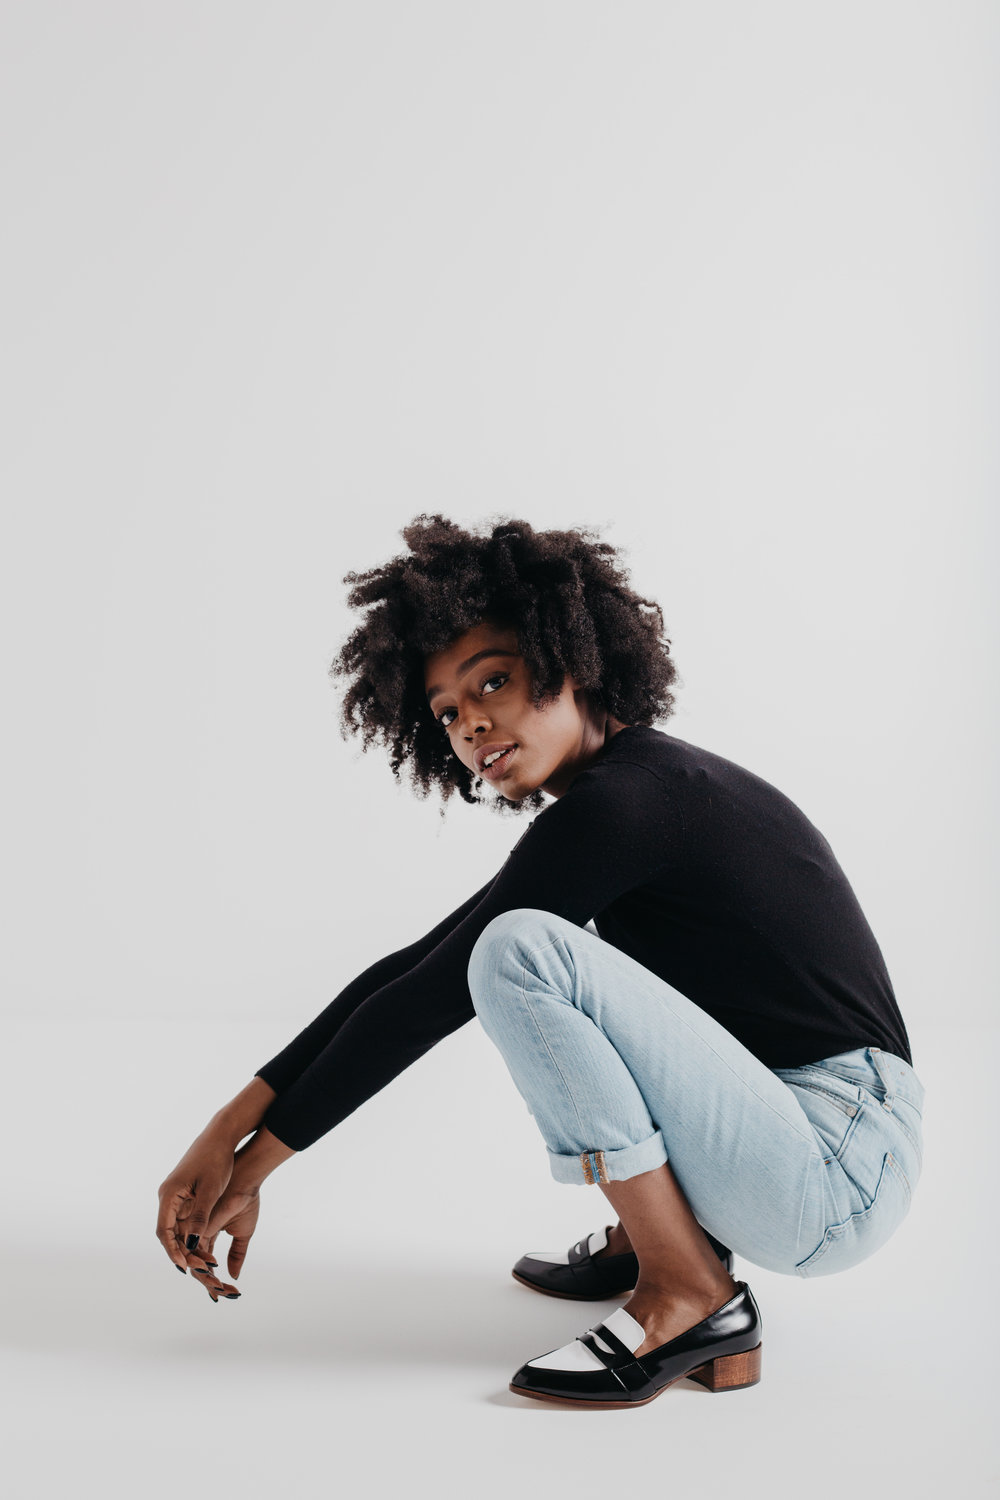 shop thelma  shot by  lindsey shorter